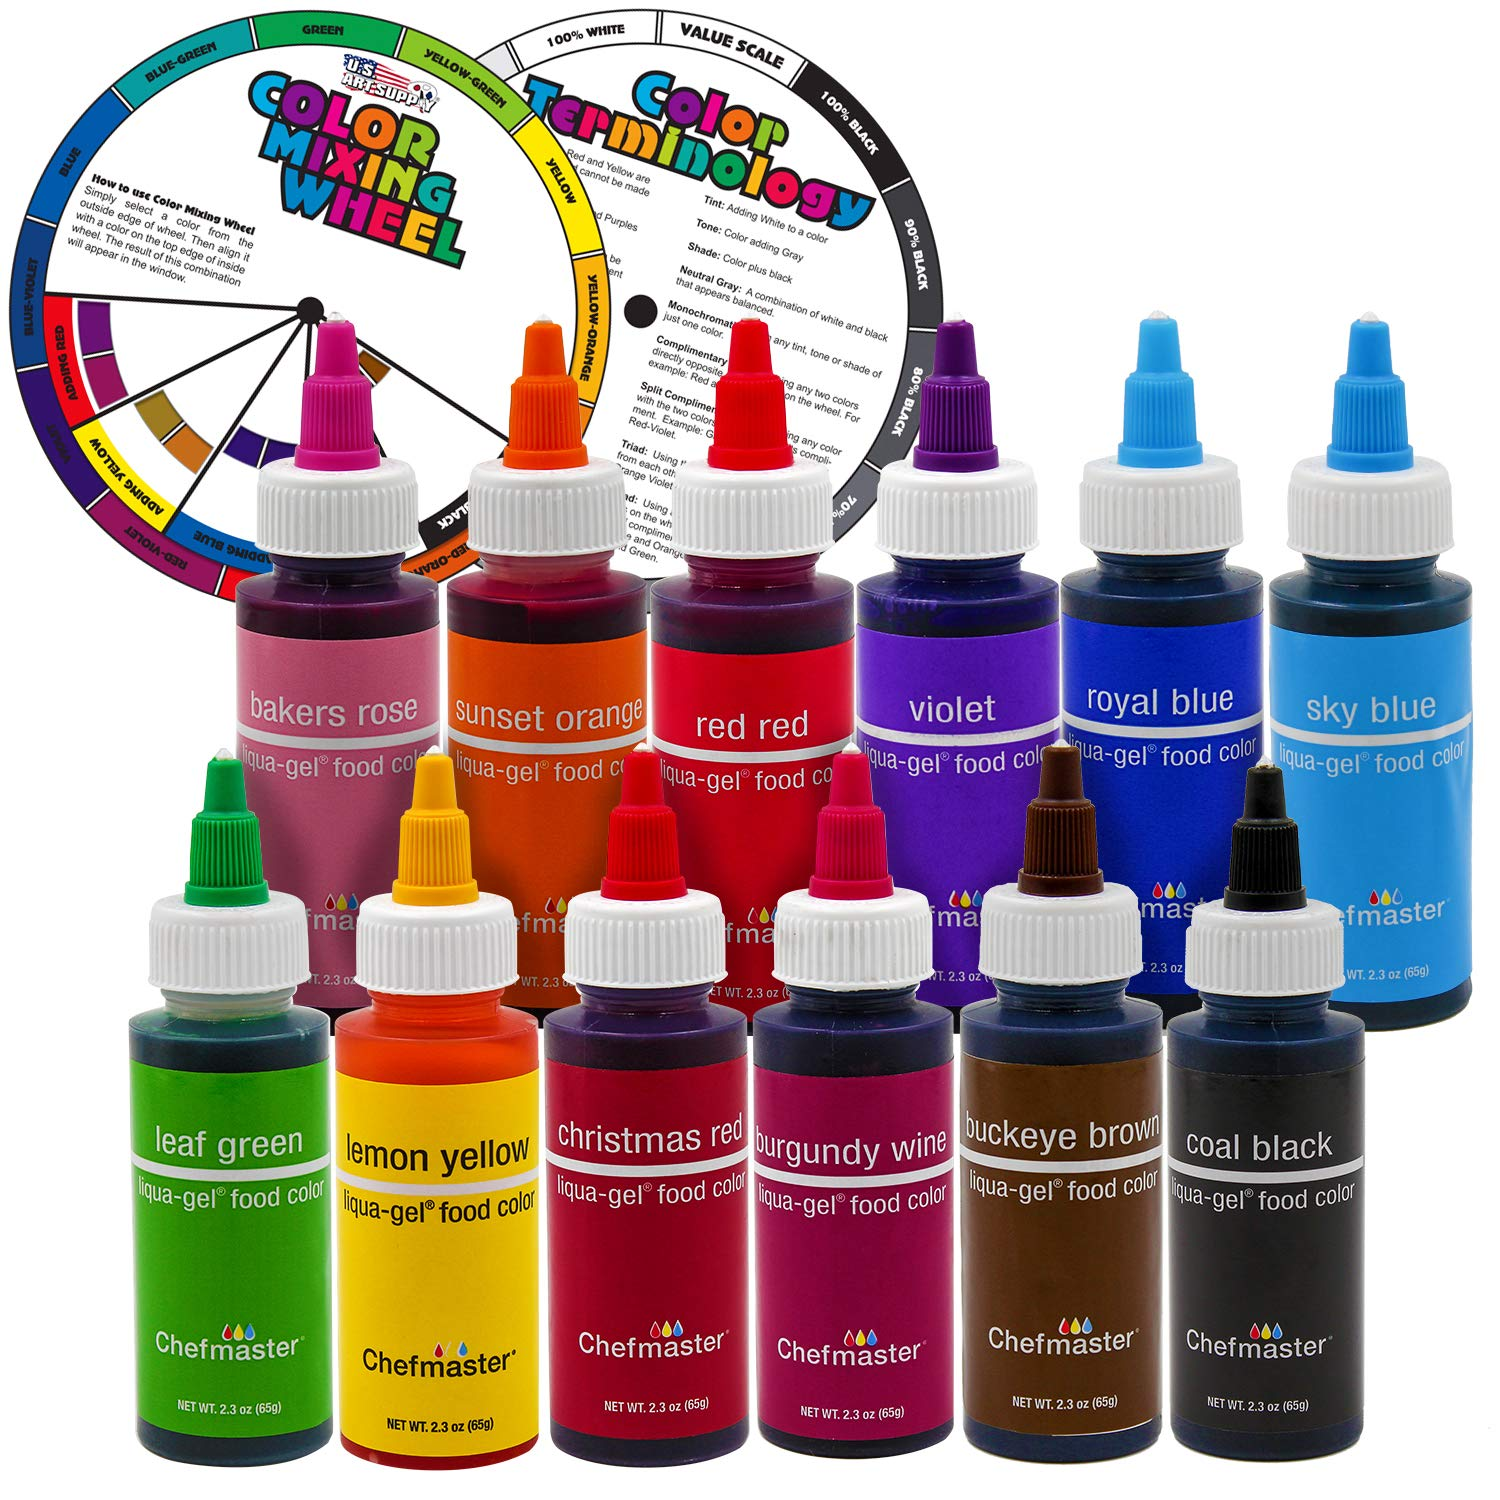 12 Food Color U.S. Cake Supply 2.3-Ounce Liqua-Gel Cake Food Coloring Variety Pack with Color Mixing Wheel - Made in the U.S.A.